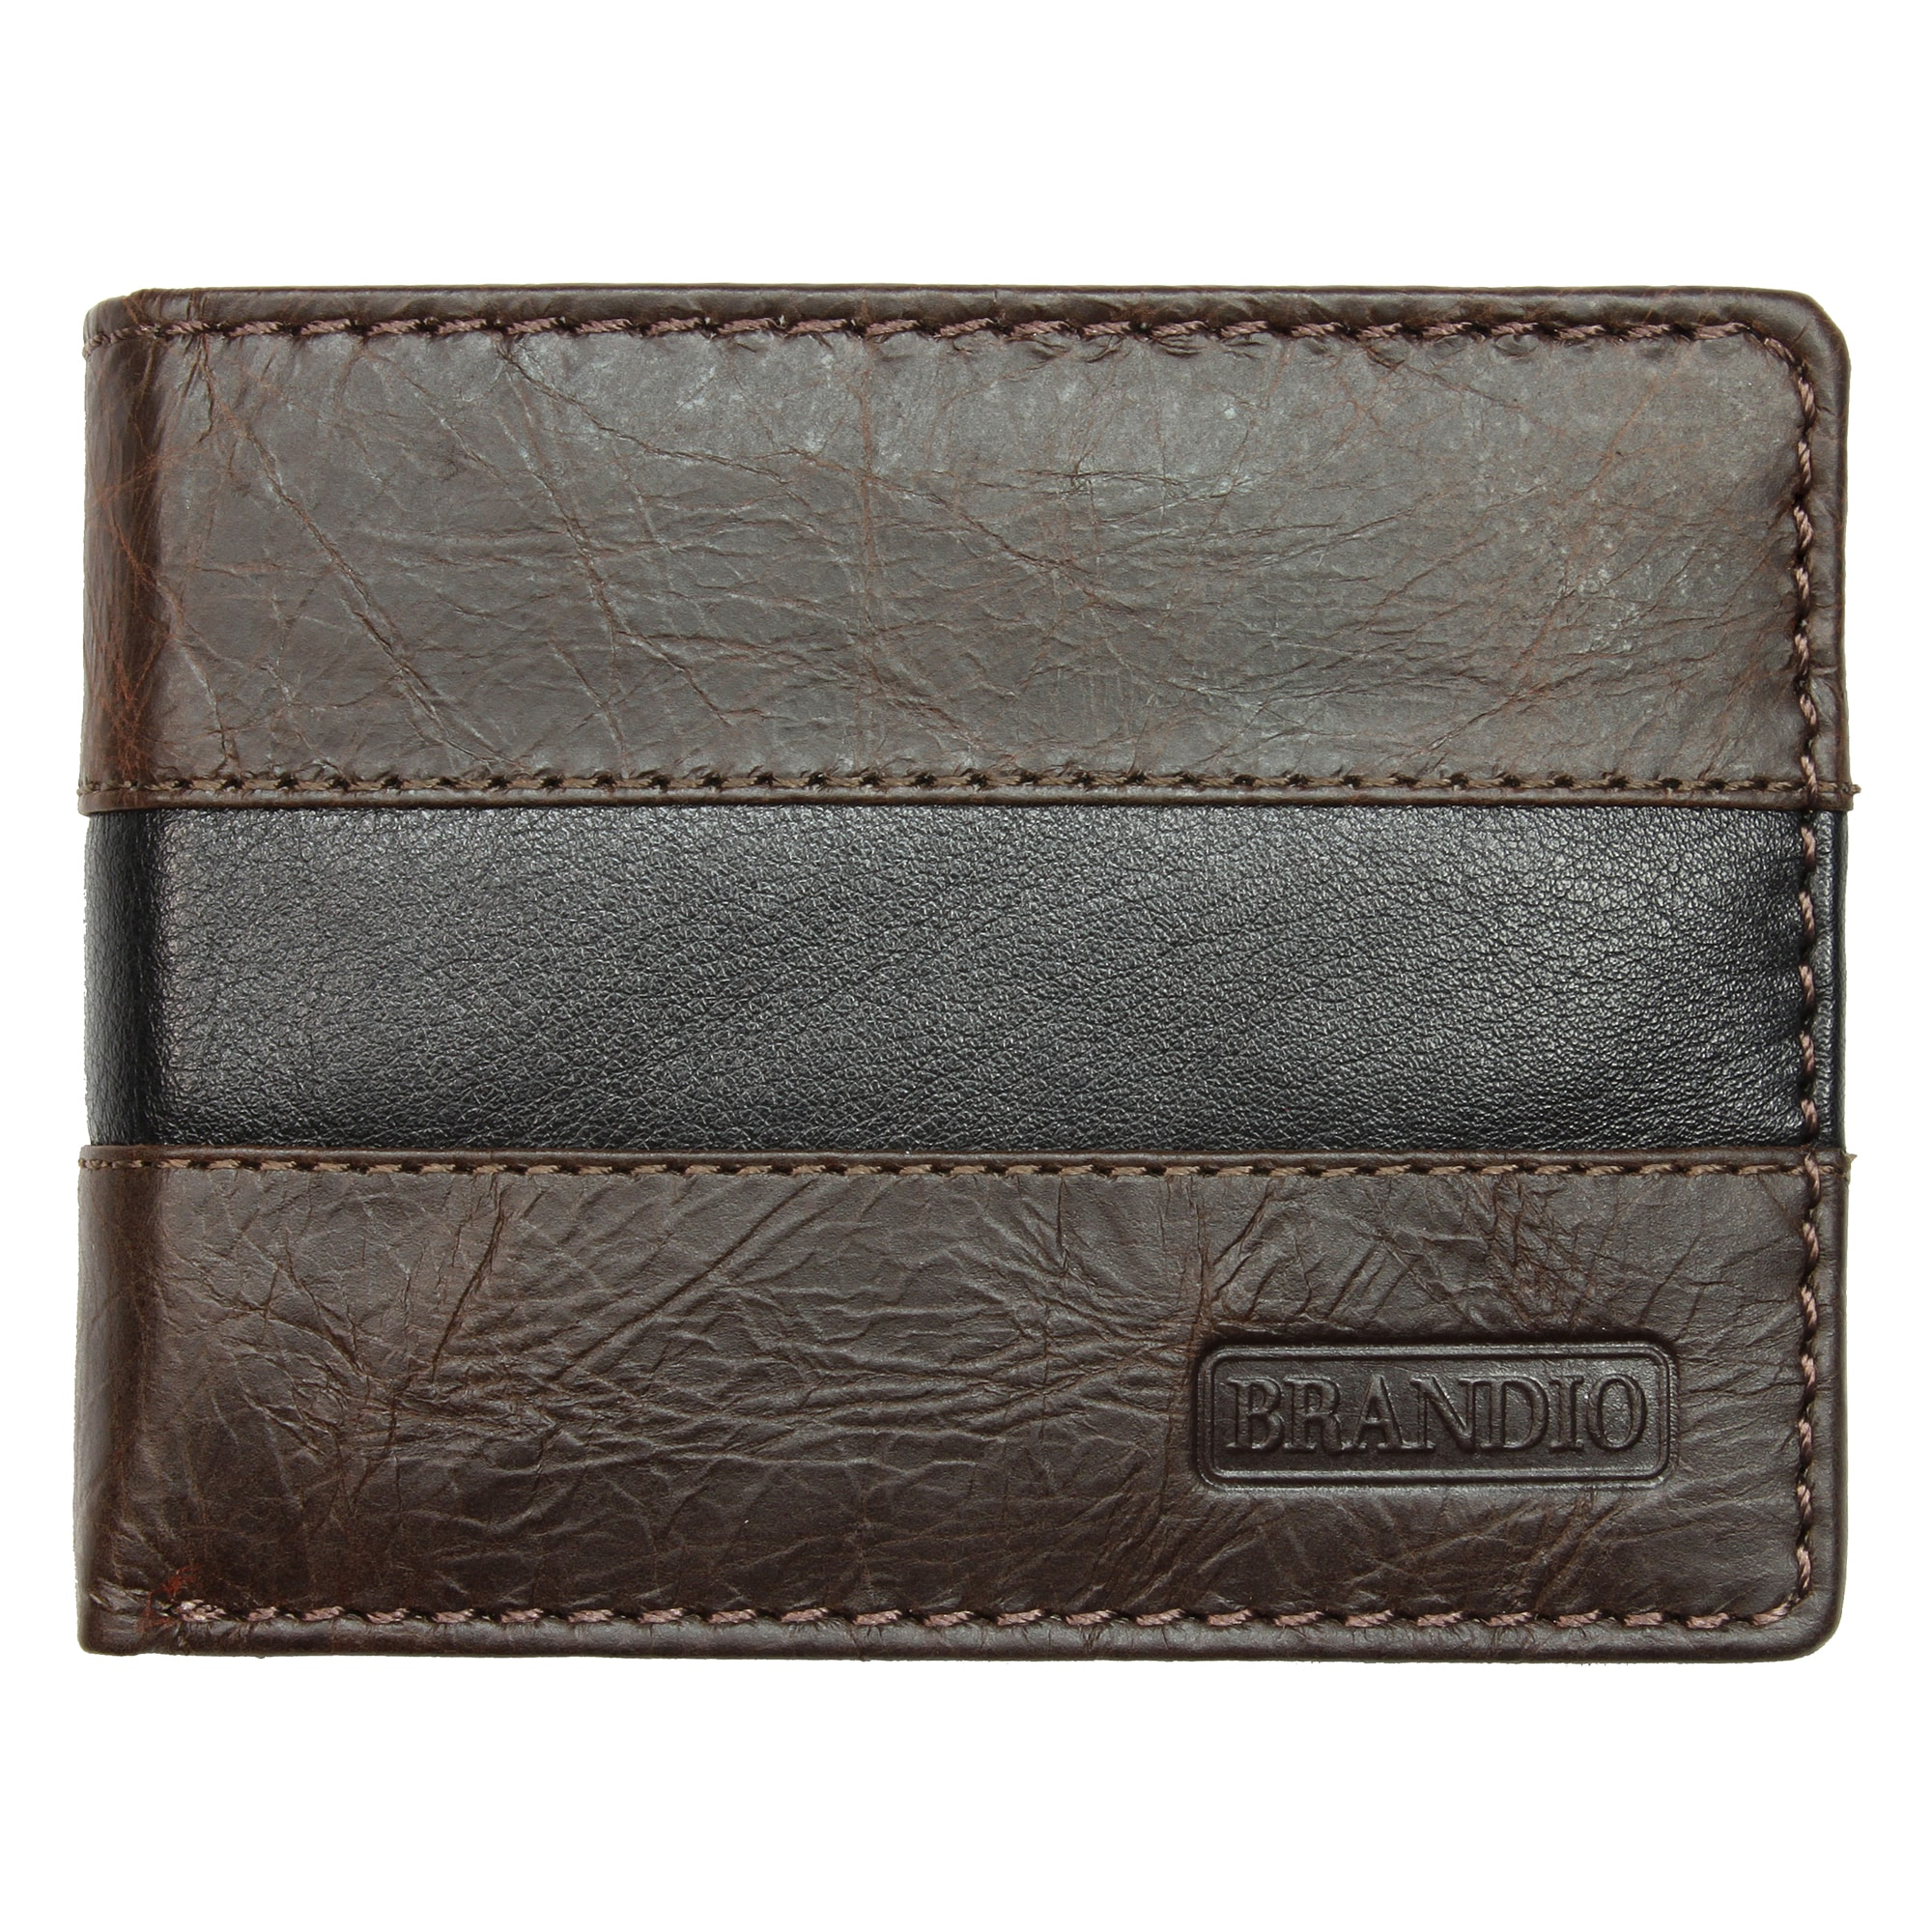 Brandio Fashion Men's Leather Wallet Bi-fold in Brown Black Design.